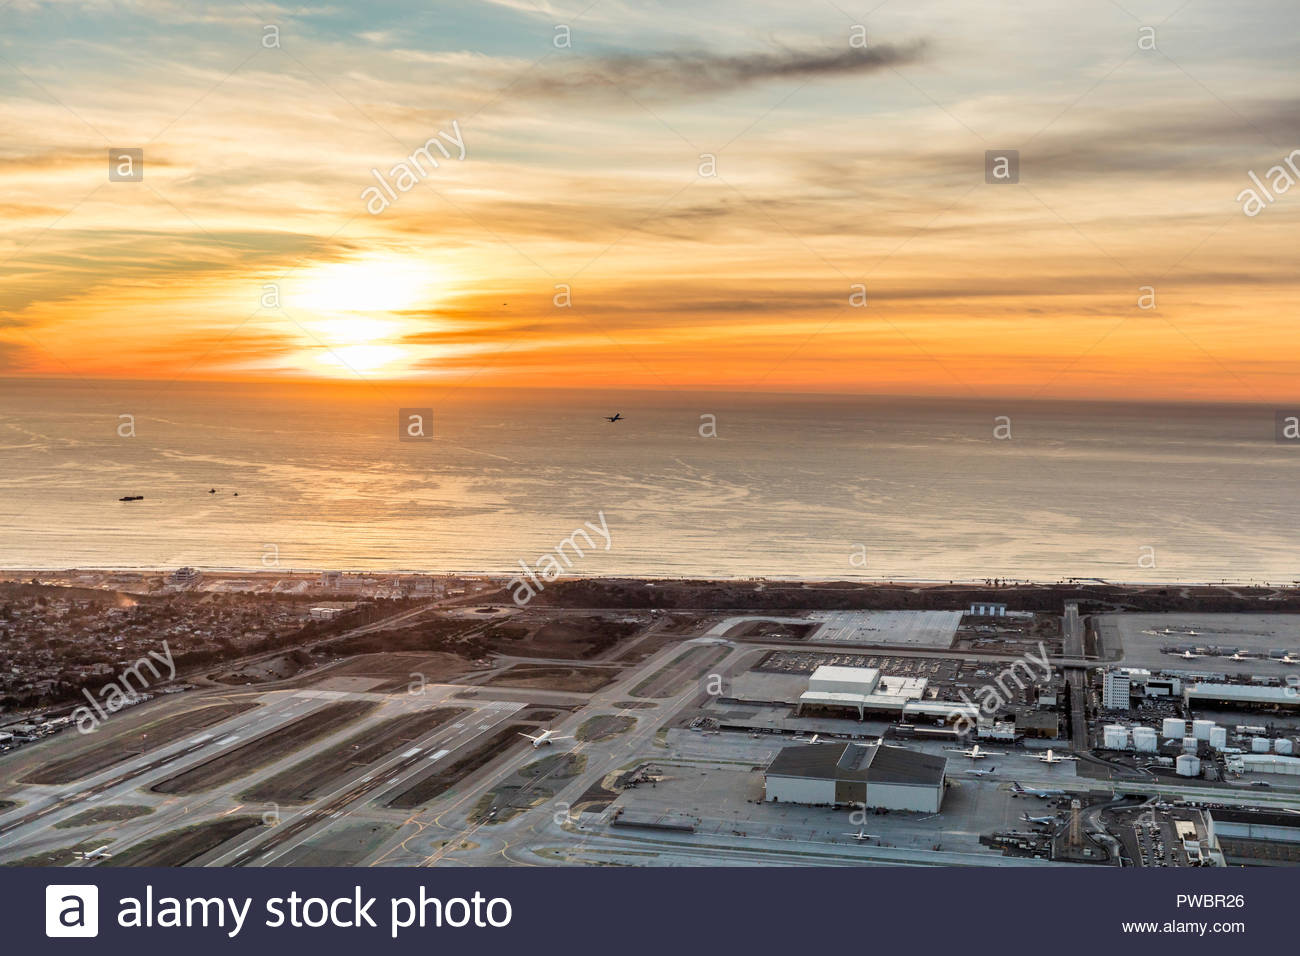 Airplanes taking off from Los Angeles International Airport at sunset. - Stock Image